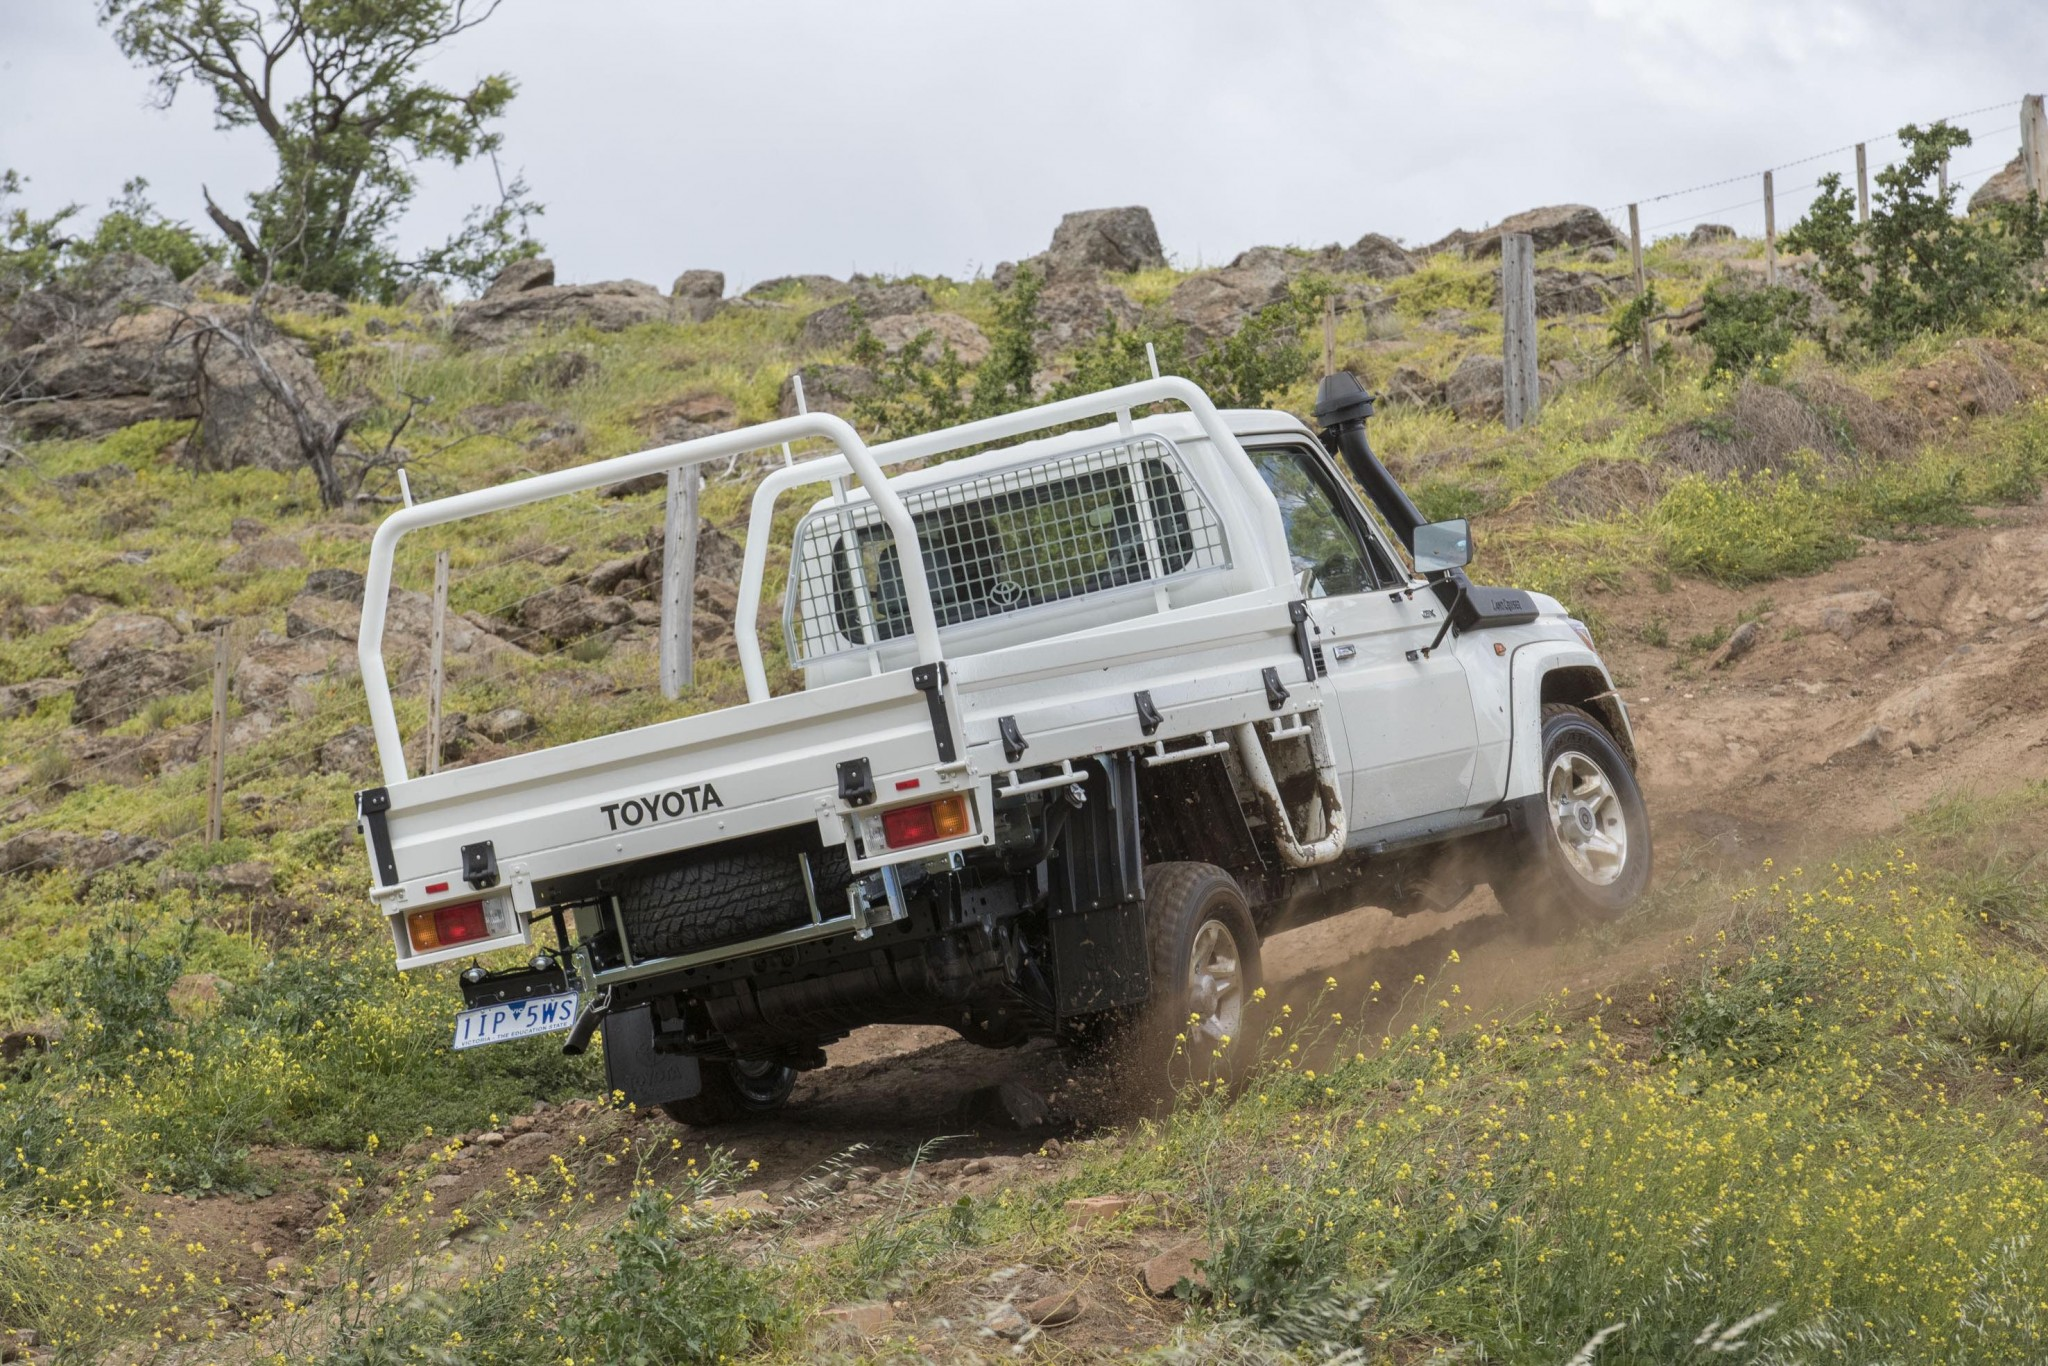 ARB air locker replacement for 70 Series LandCruiser released